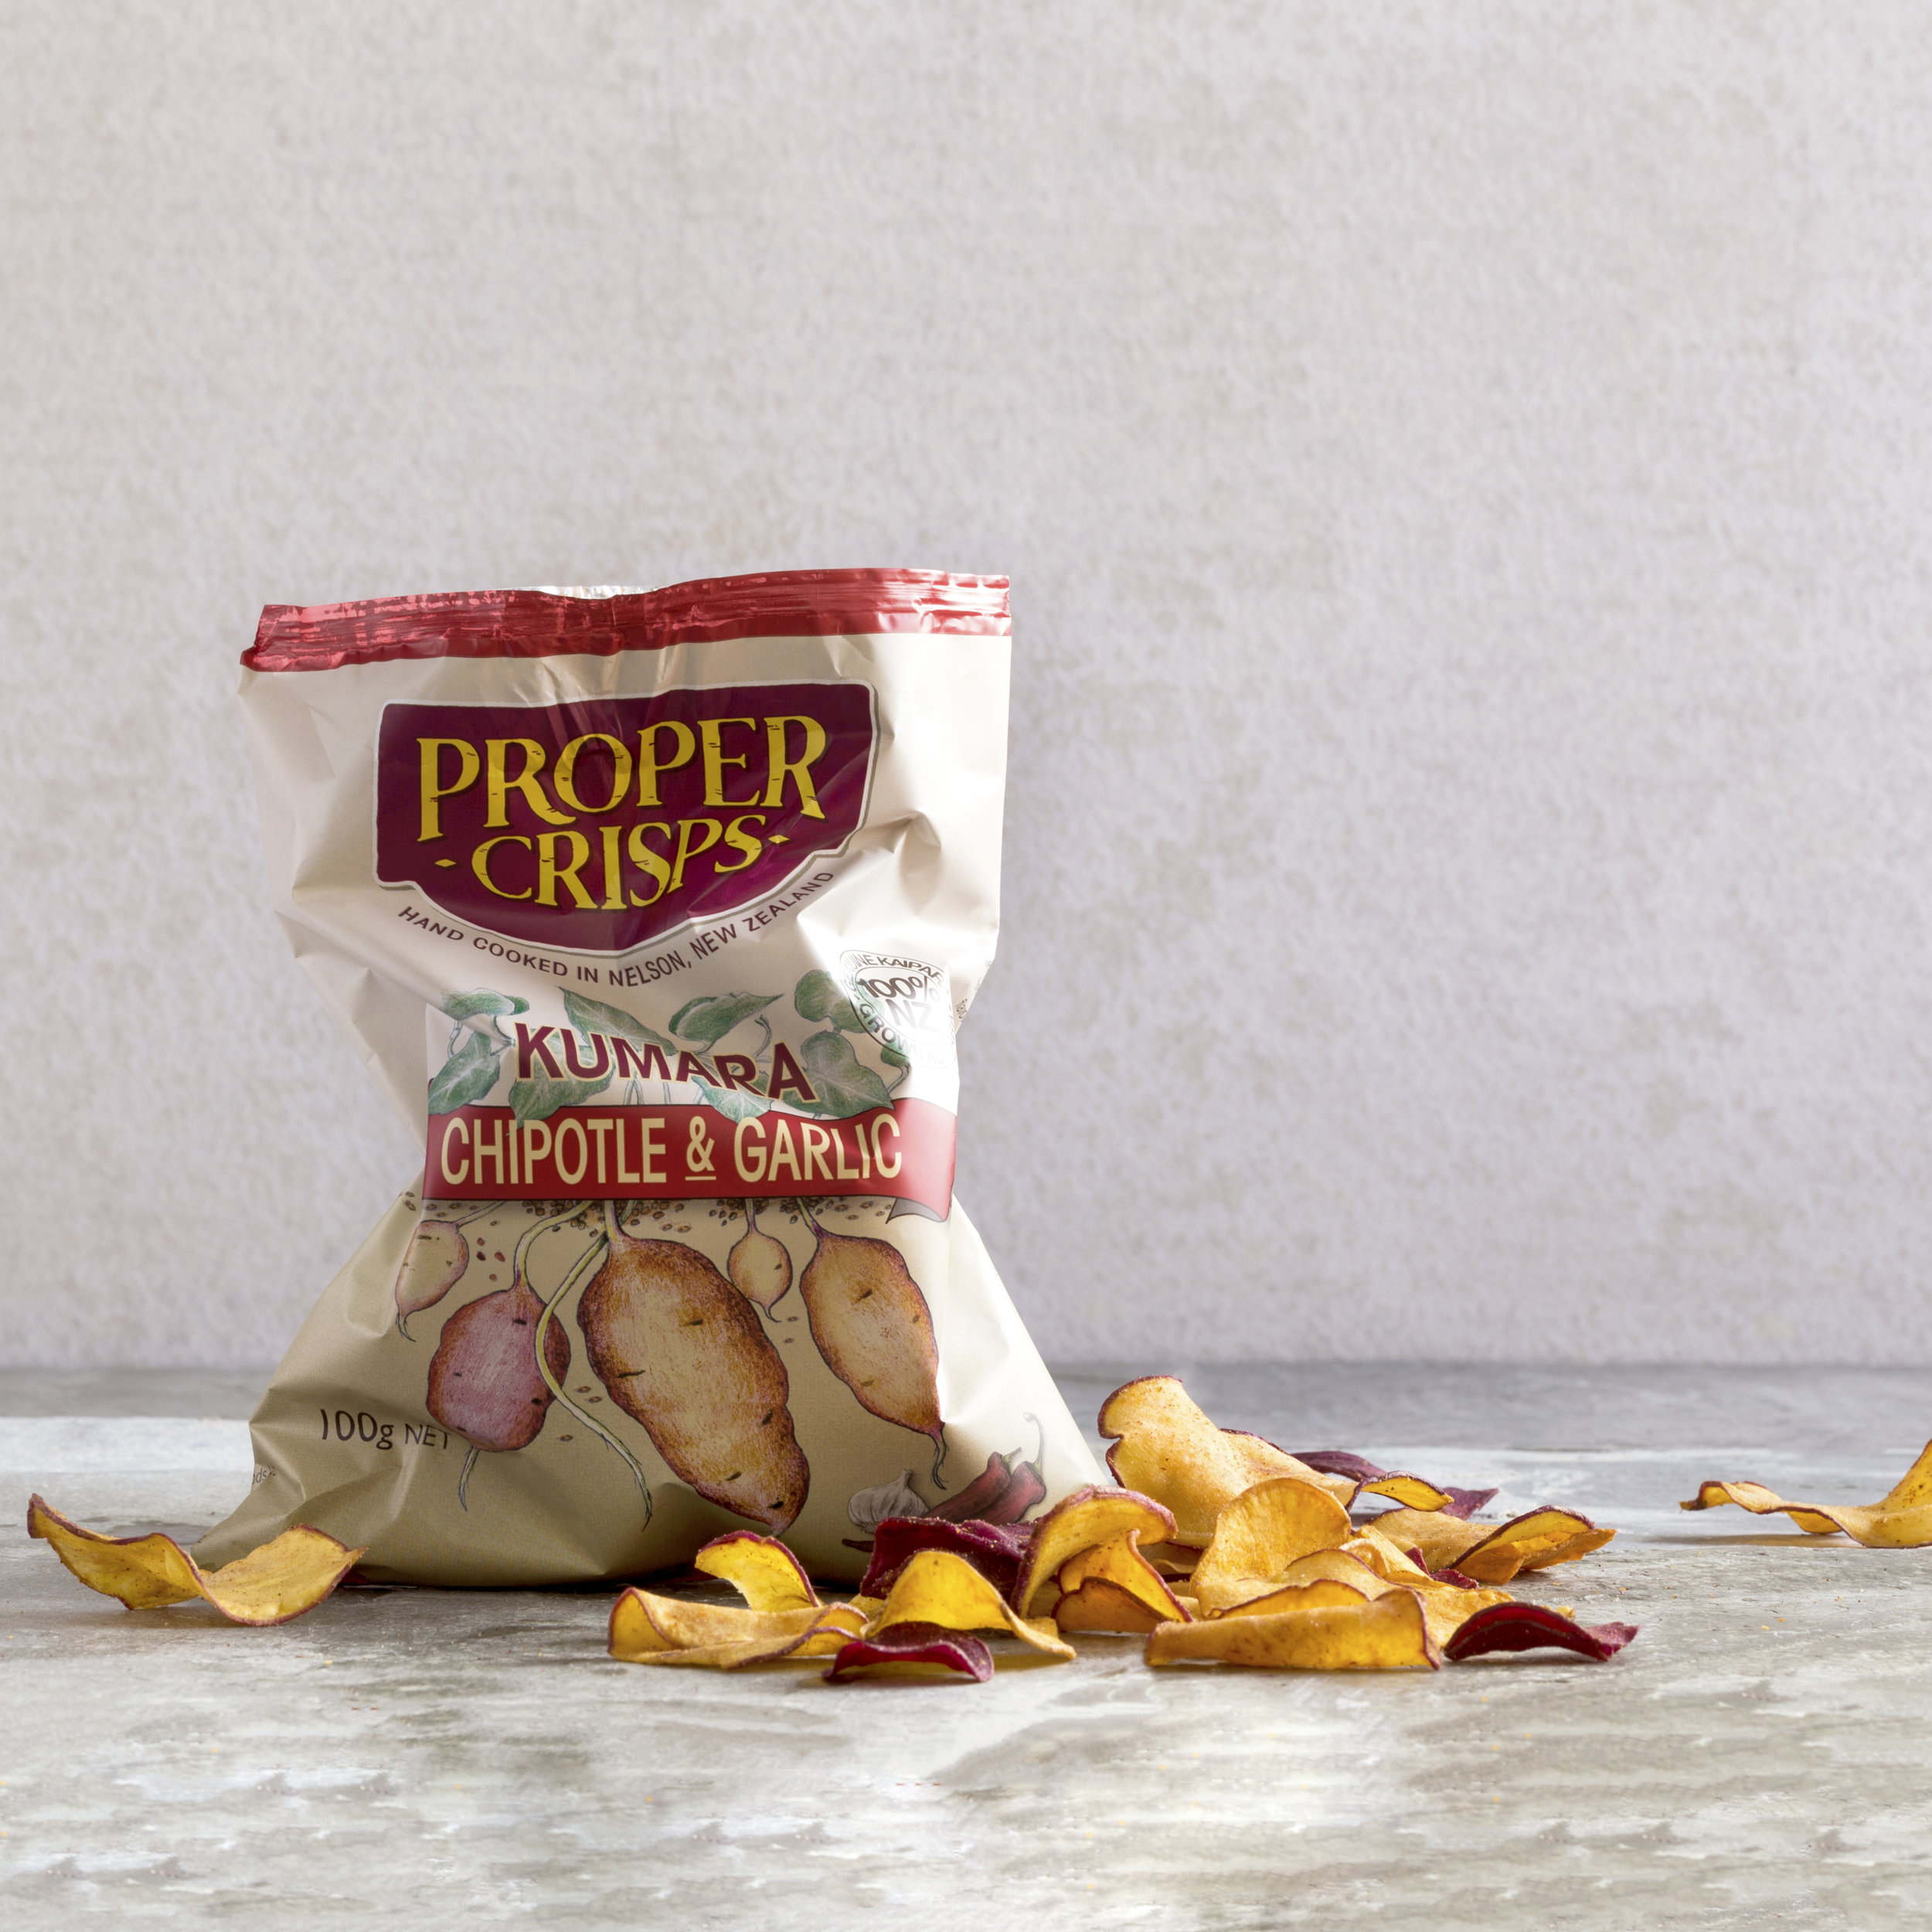 Proper Crisps_Kumara Chipotle and Garlic_MG_7370a.jpg